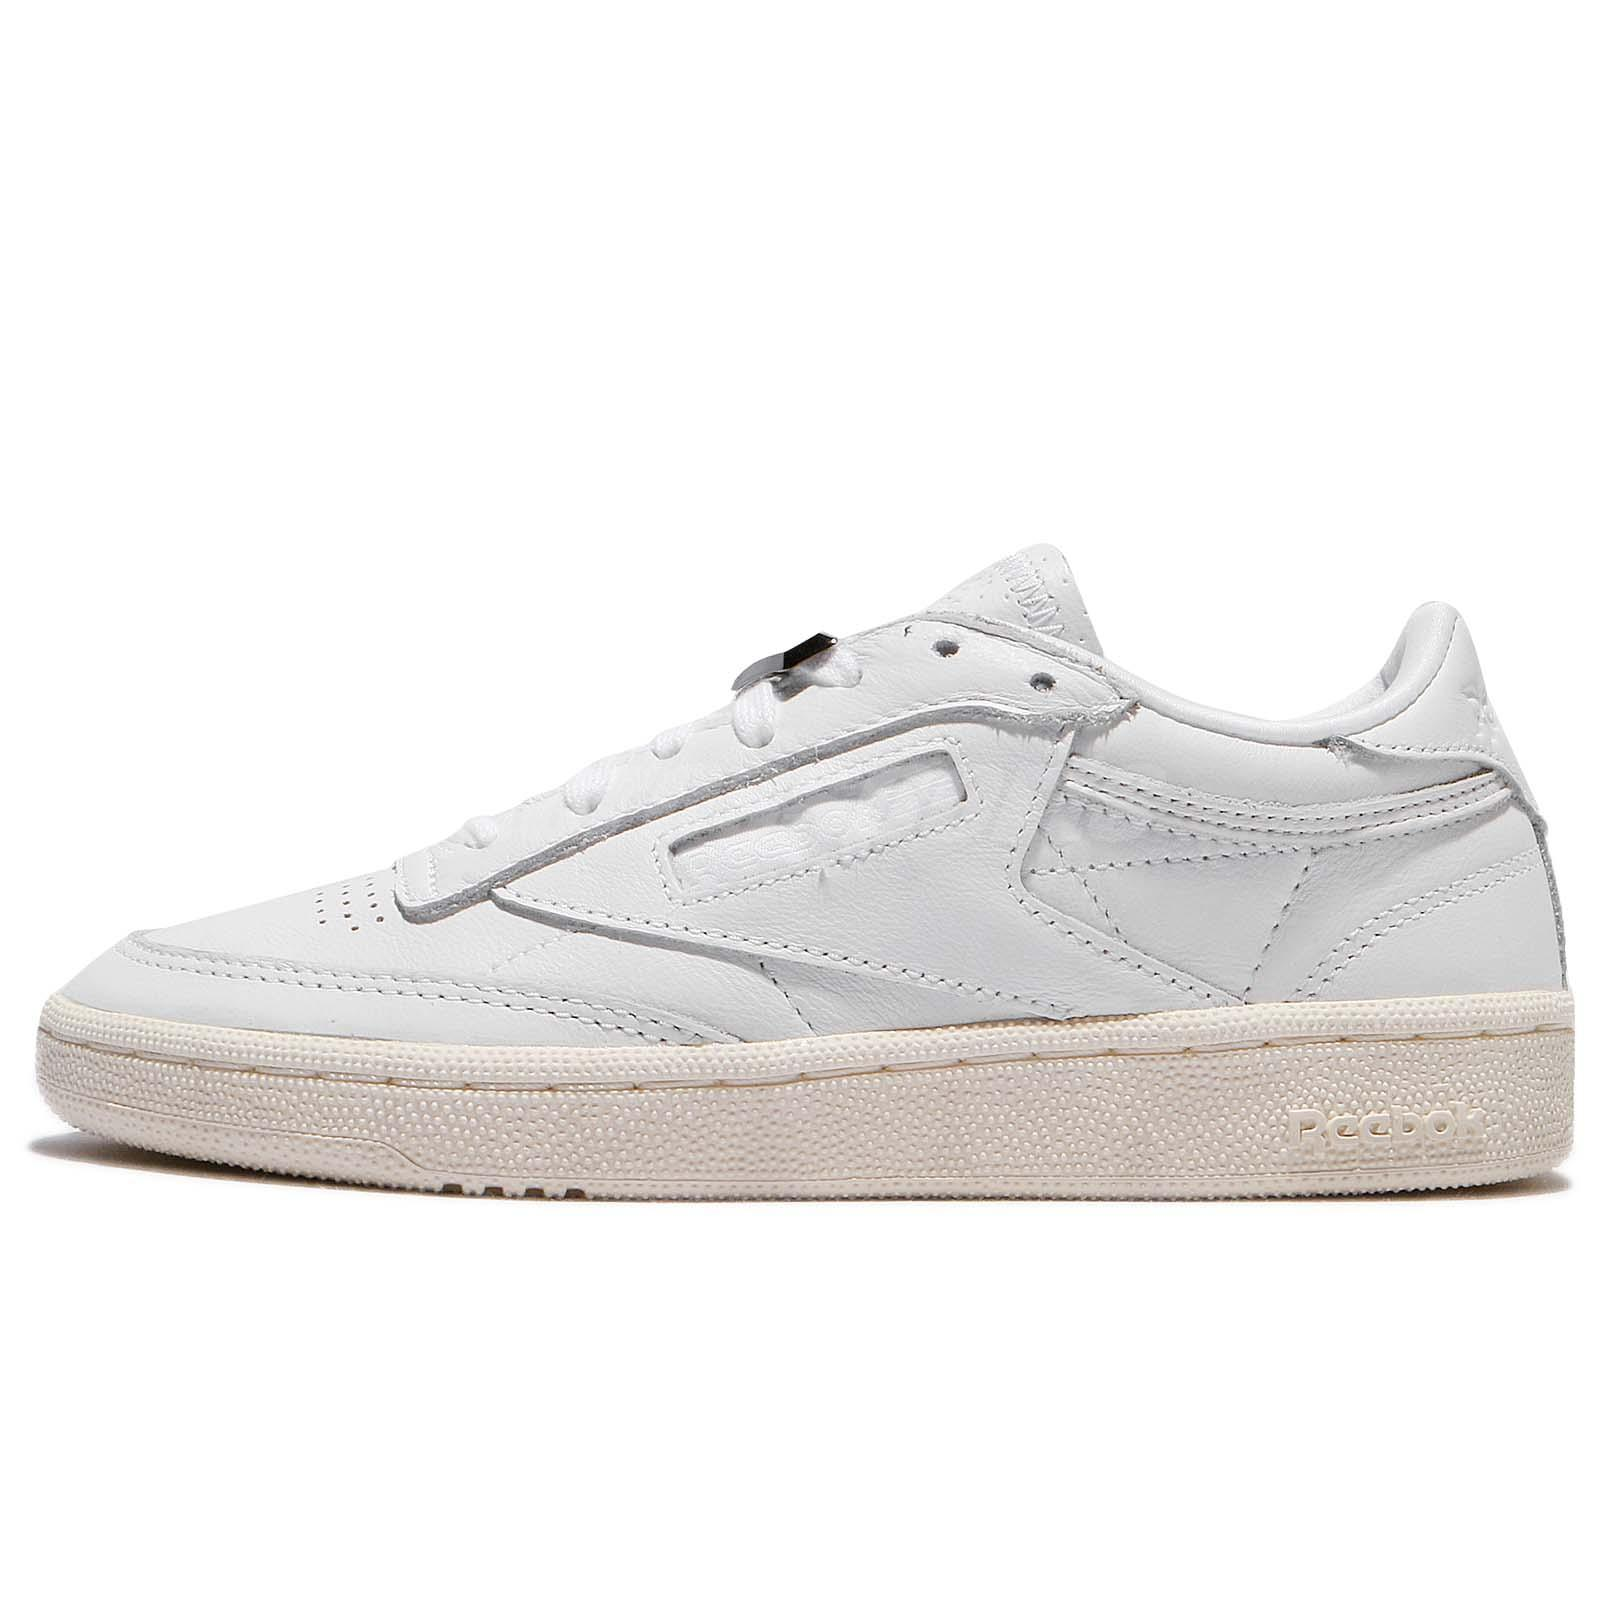 bbfb2172025 Reebok Club C 85 Hardware White Chalk Women Shoes Sneakers Trainers BS9595